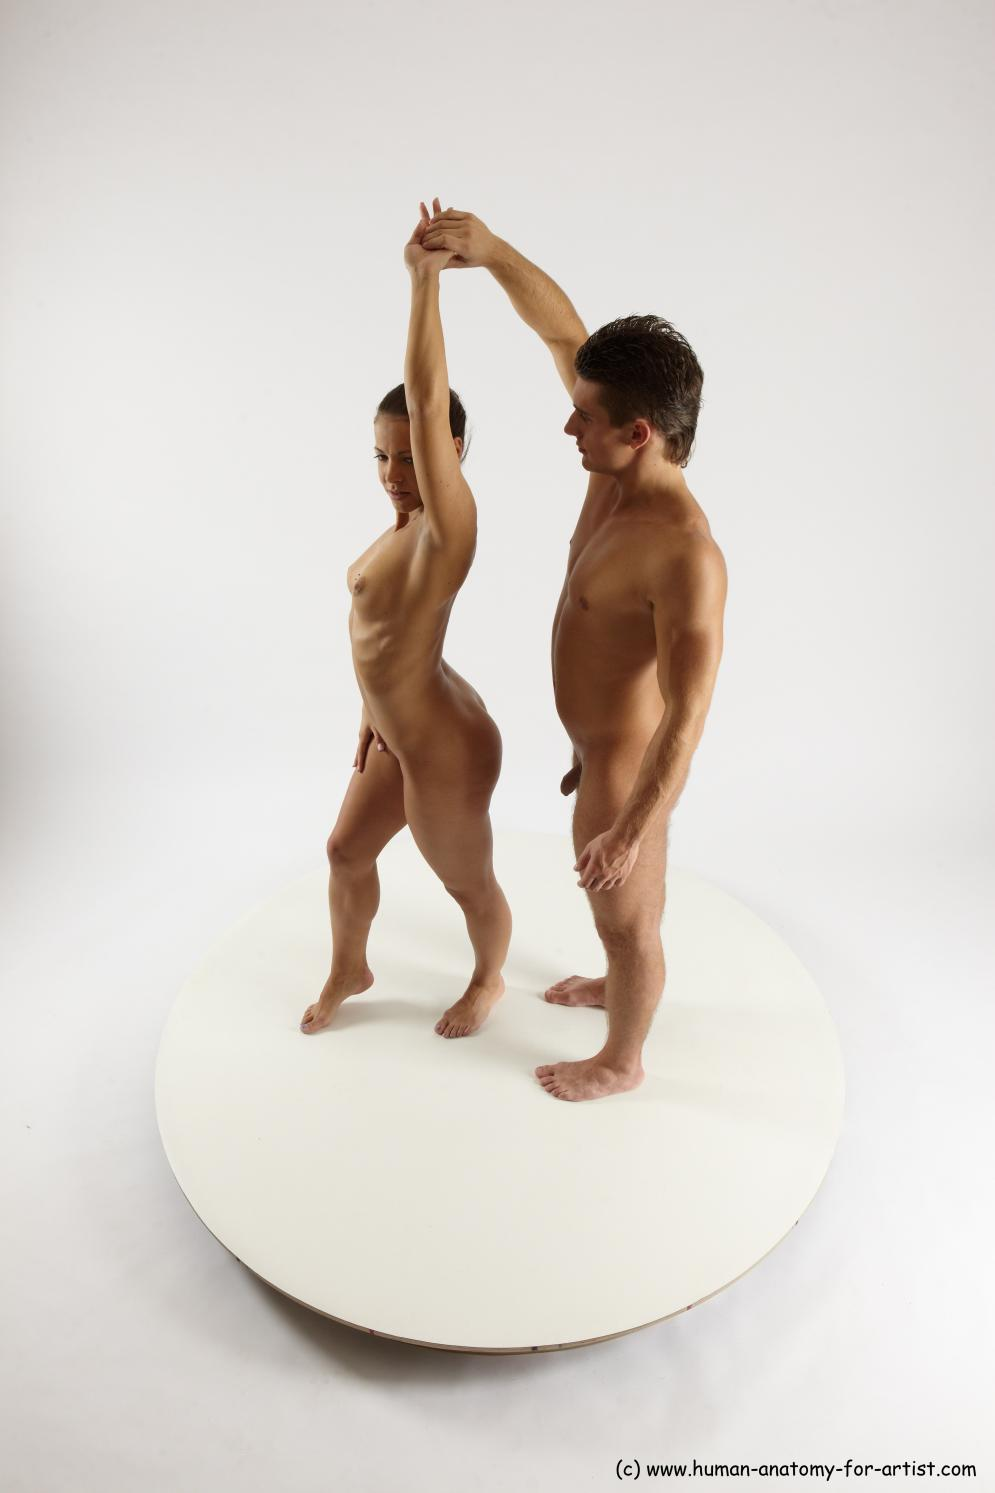 Image from Human-anatomy-for-artists.com - duo_standing_01a.jpg